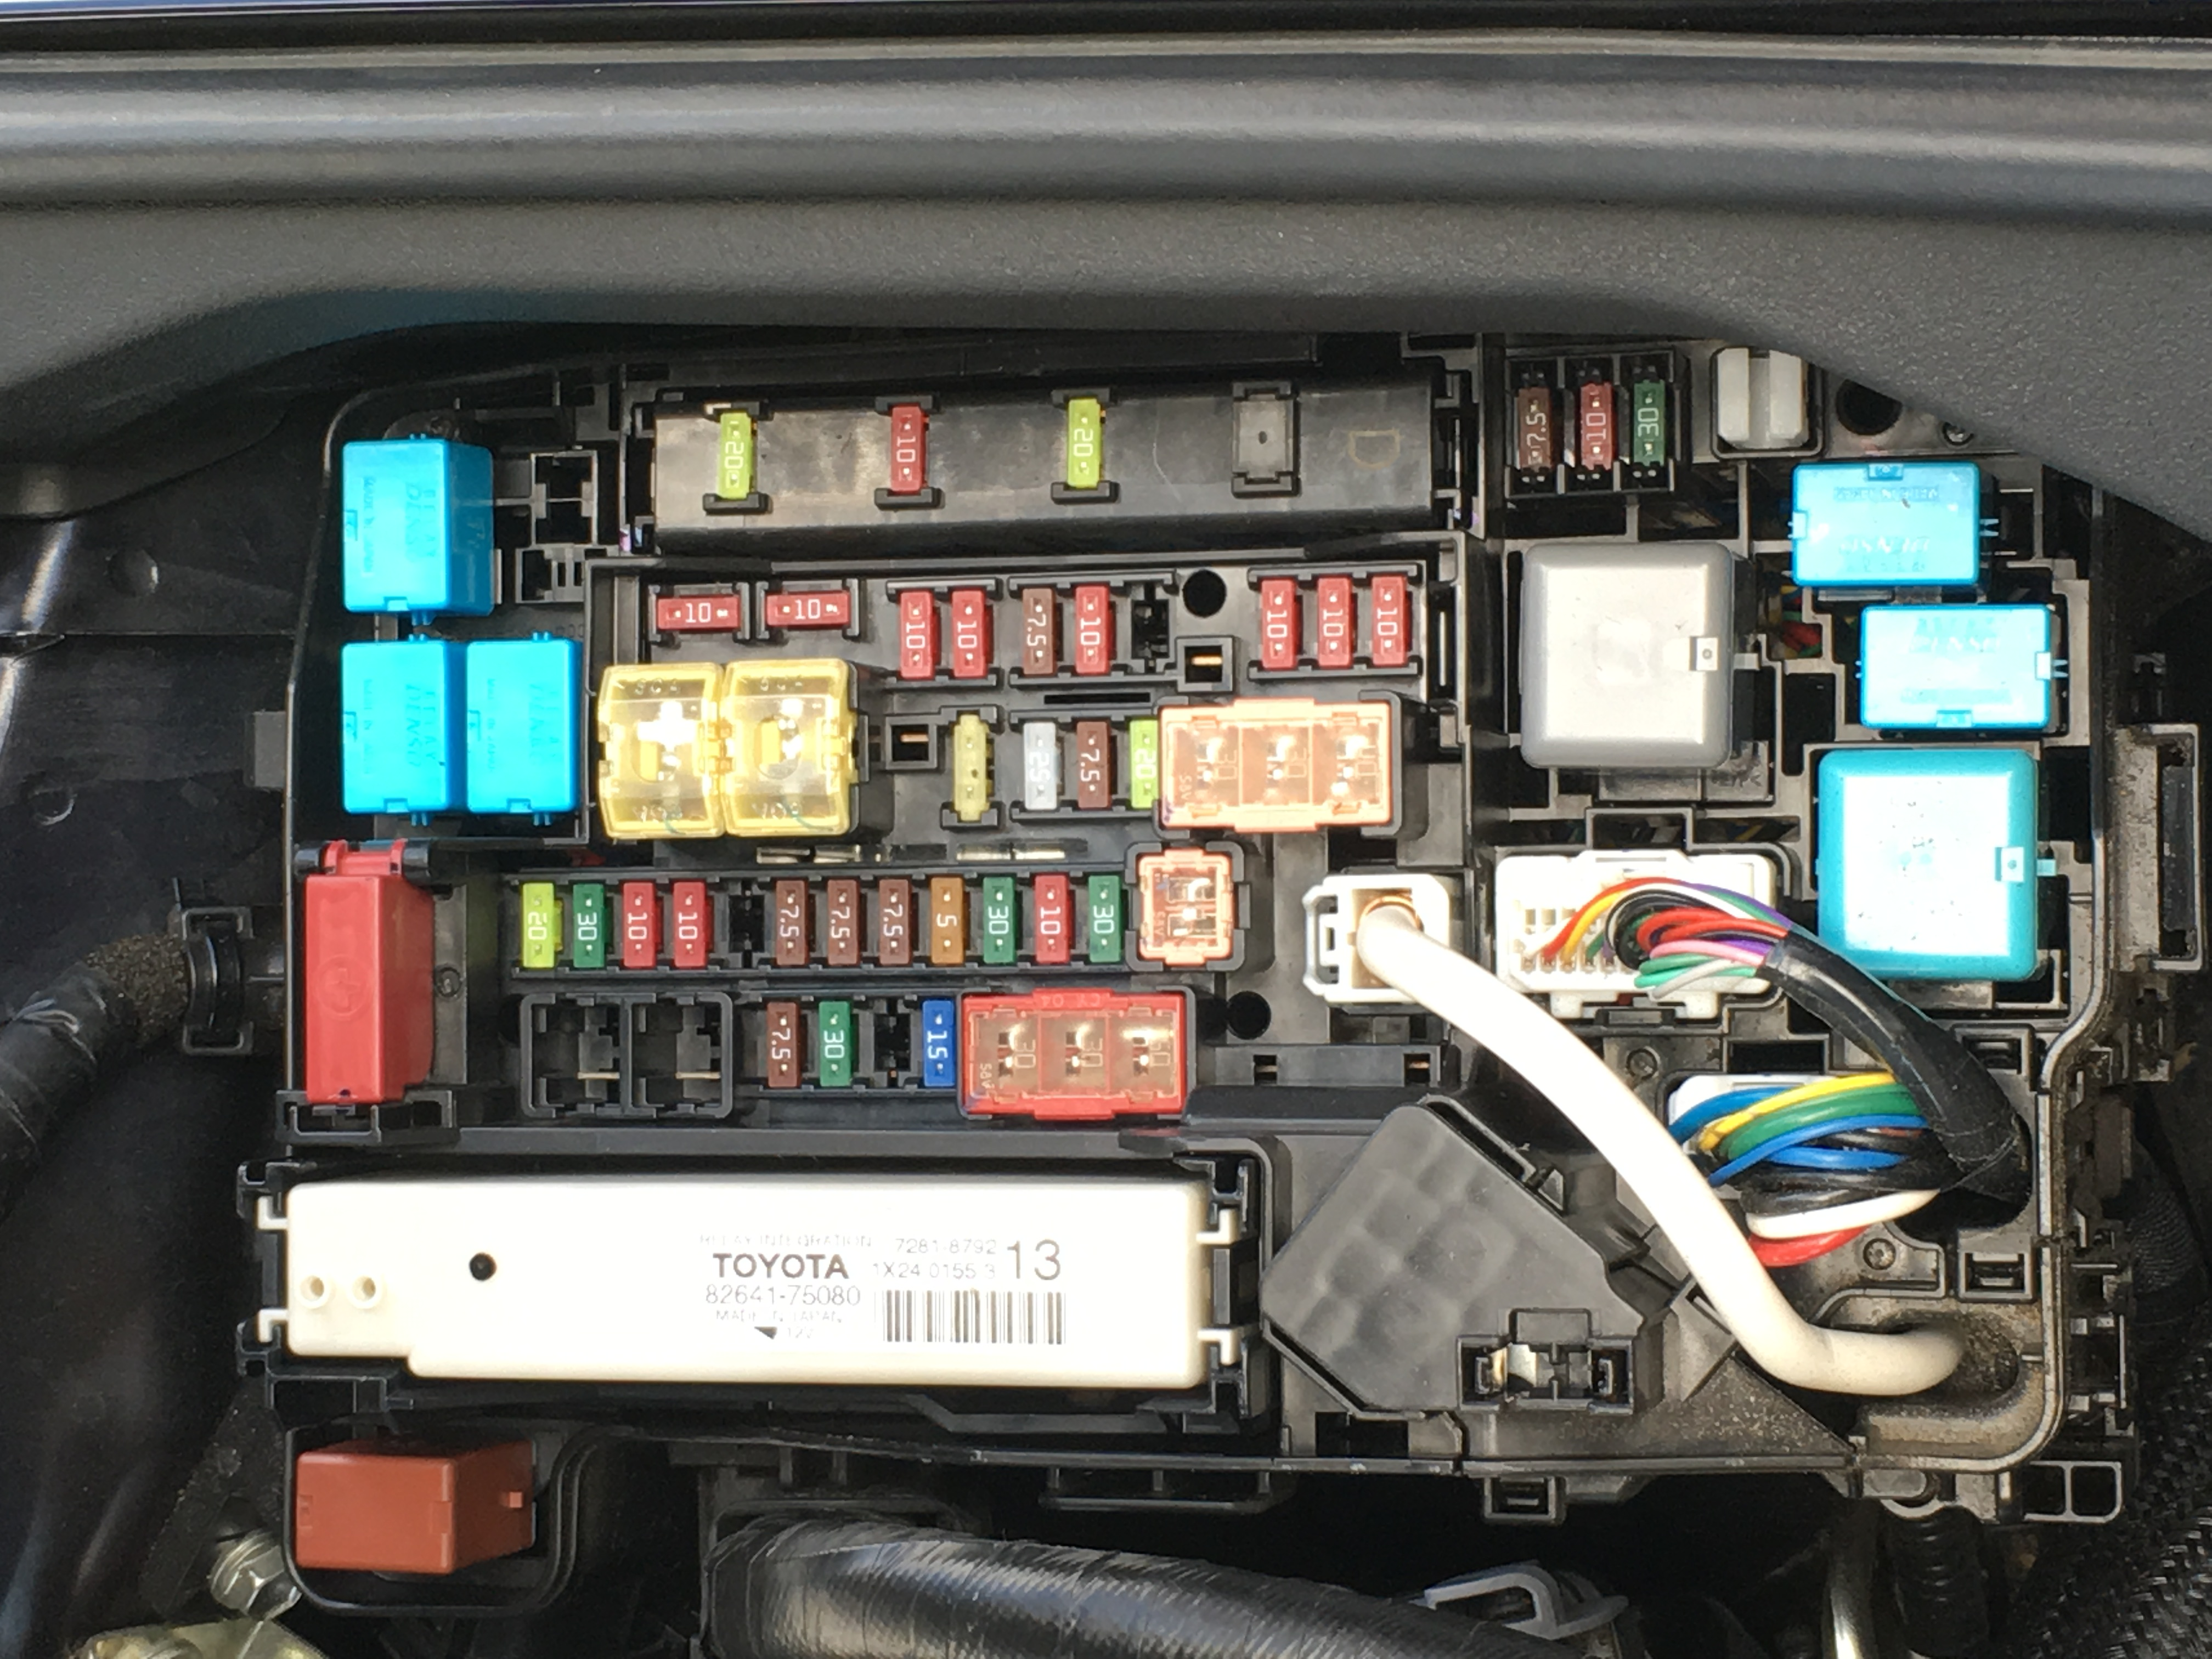 LA_5429] Lexus Hs250H Fuse Box Download DiagramRous Tomy Comin Icism Epete Inama Mohammedshrine Librar Wiring 101